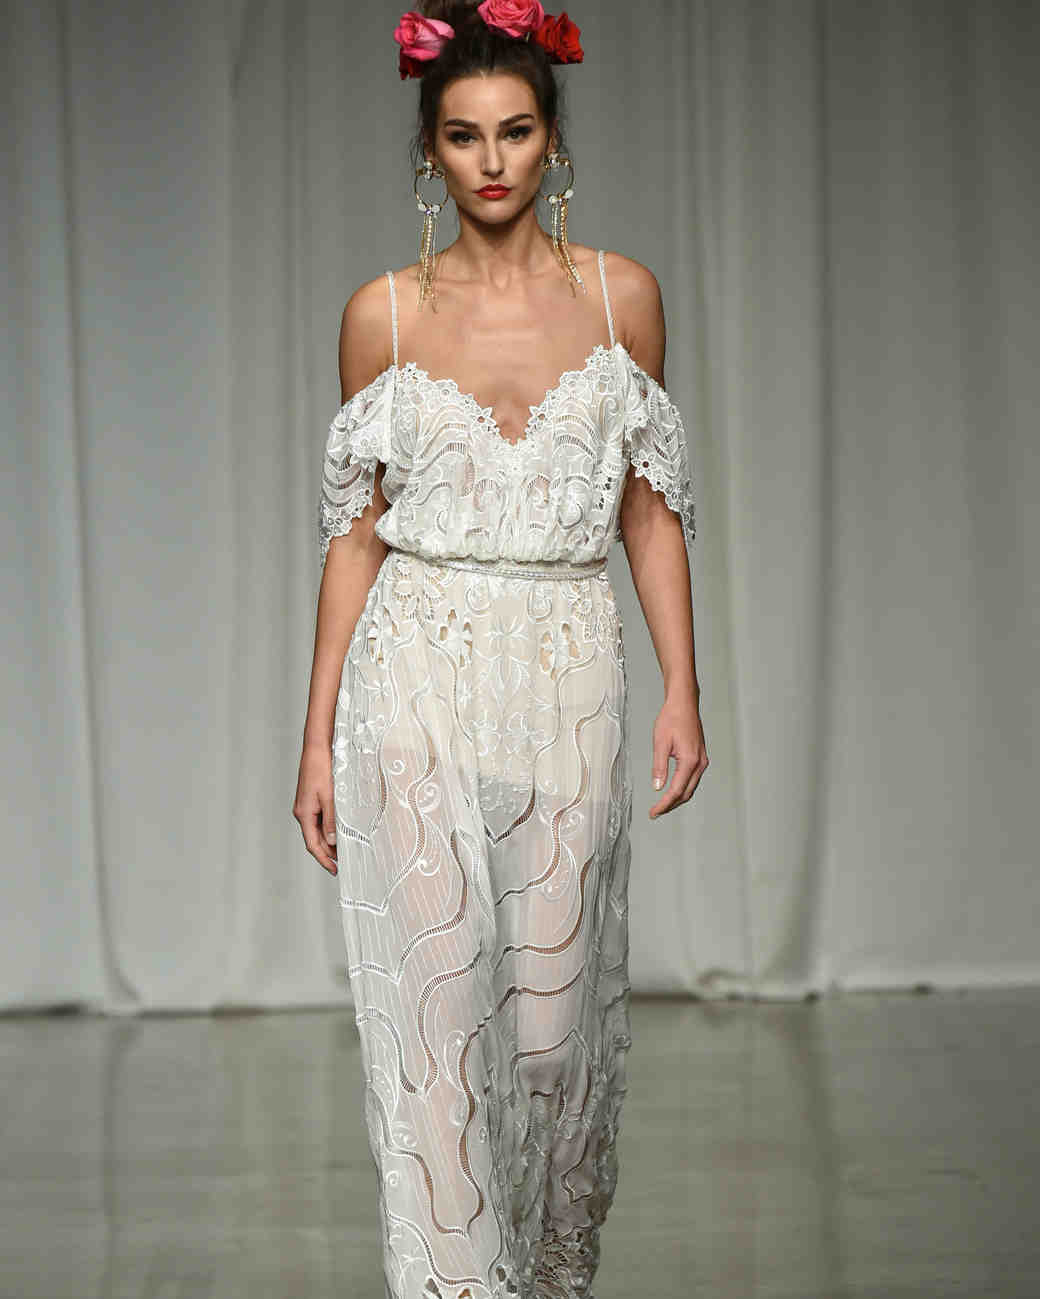 julie vino group fall 2019 over the shoulder spaghetti strap sheer wedding dress